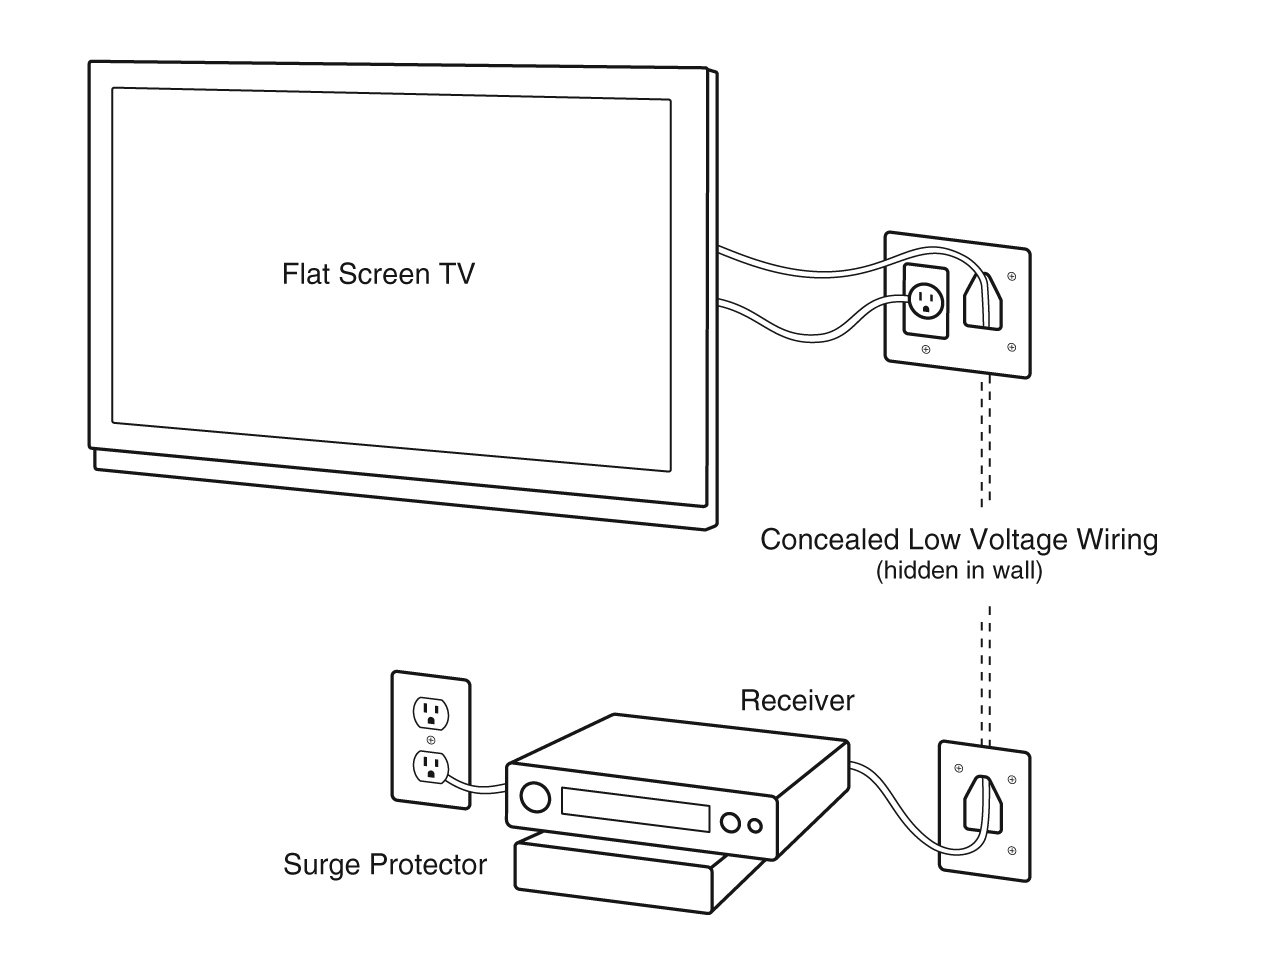 wiring a home theater room » Design and Ideas